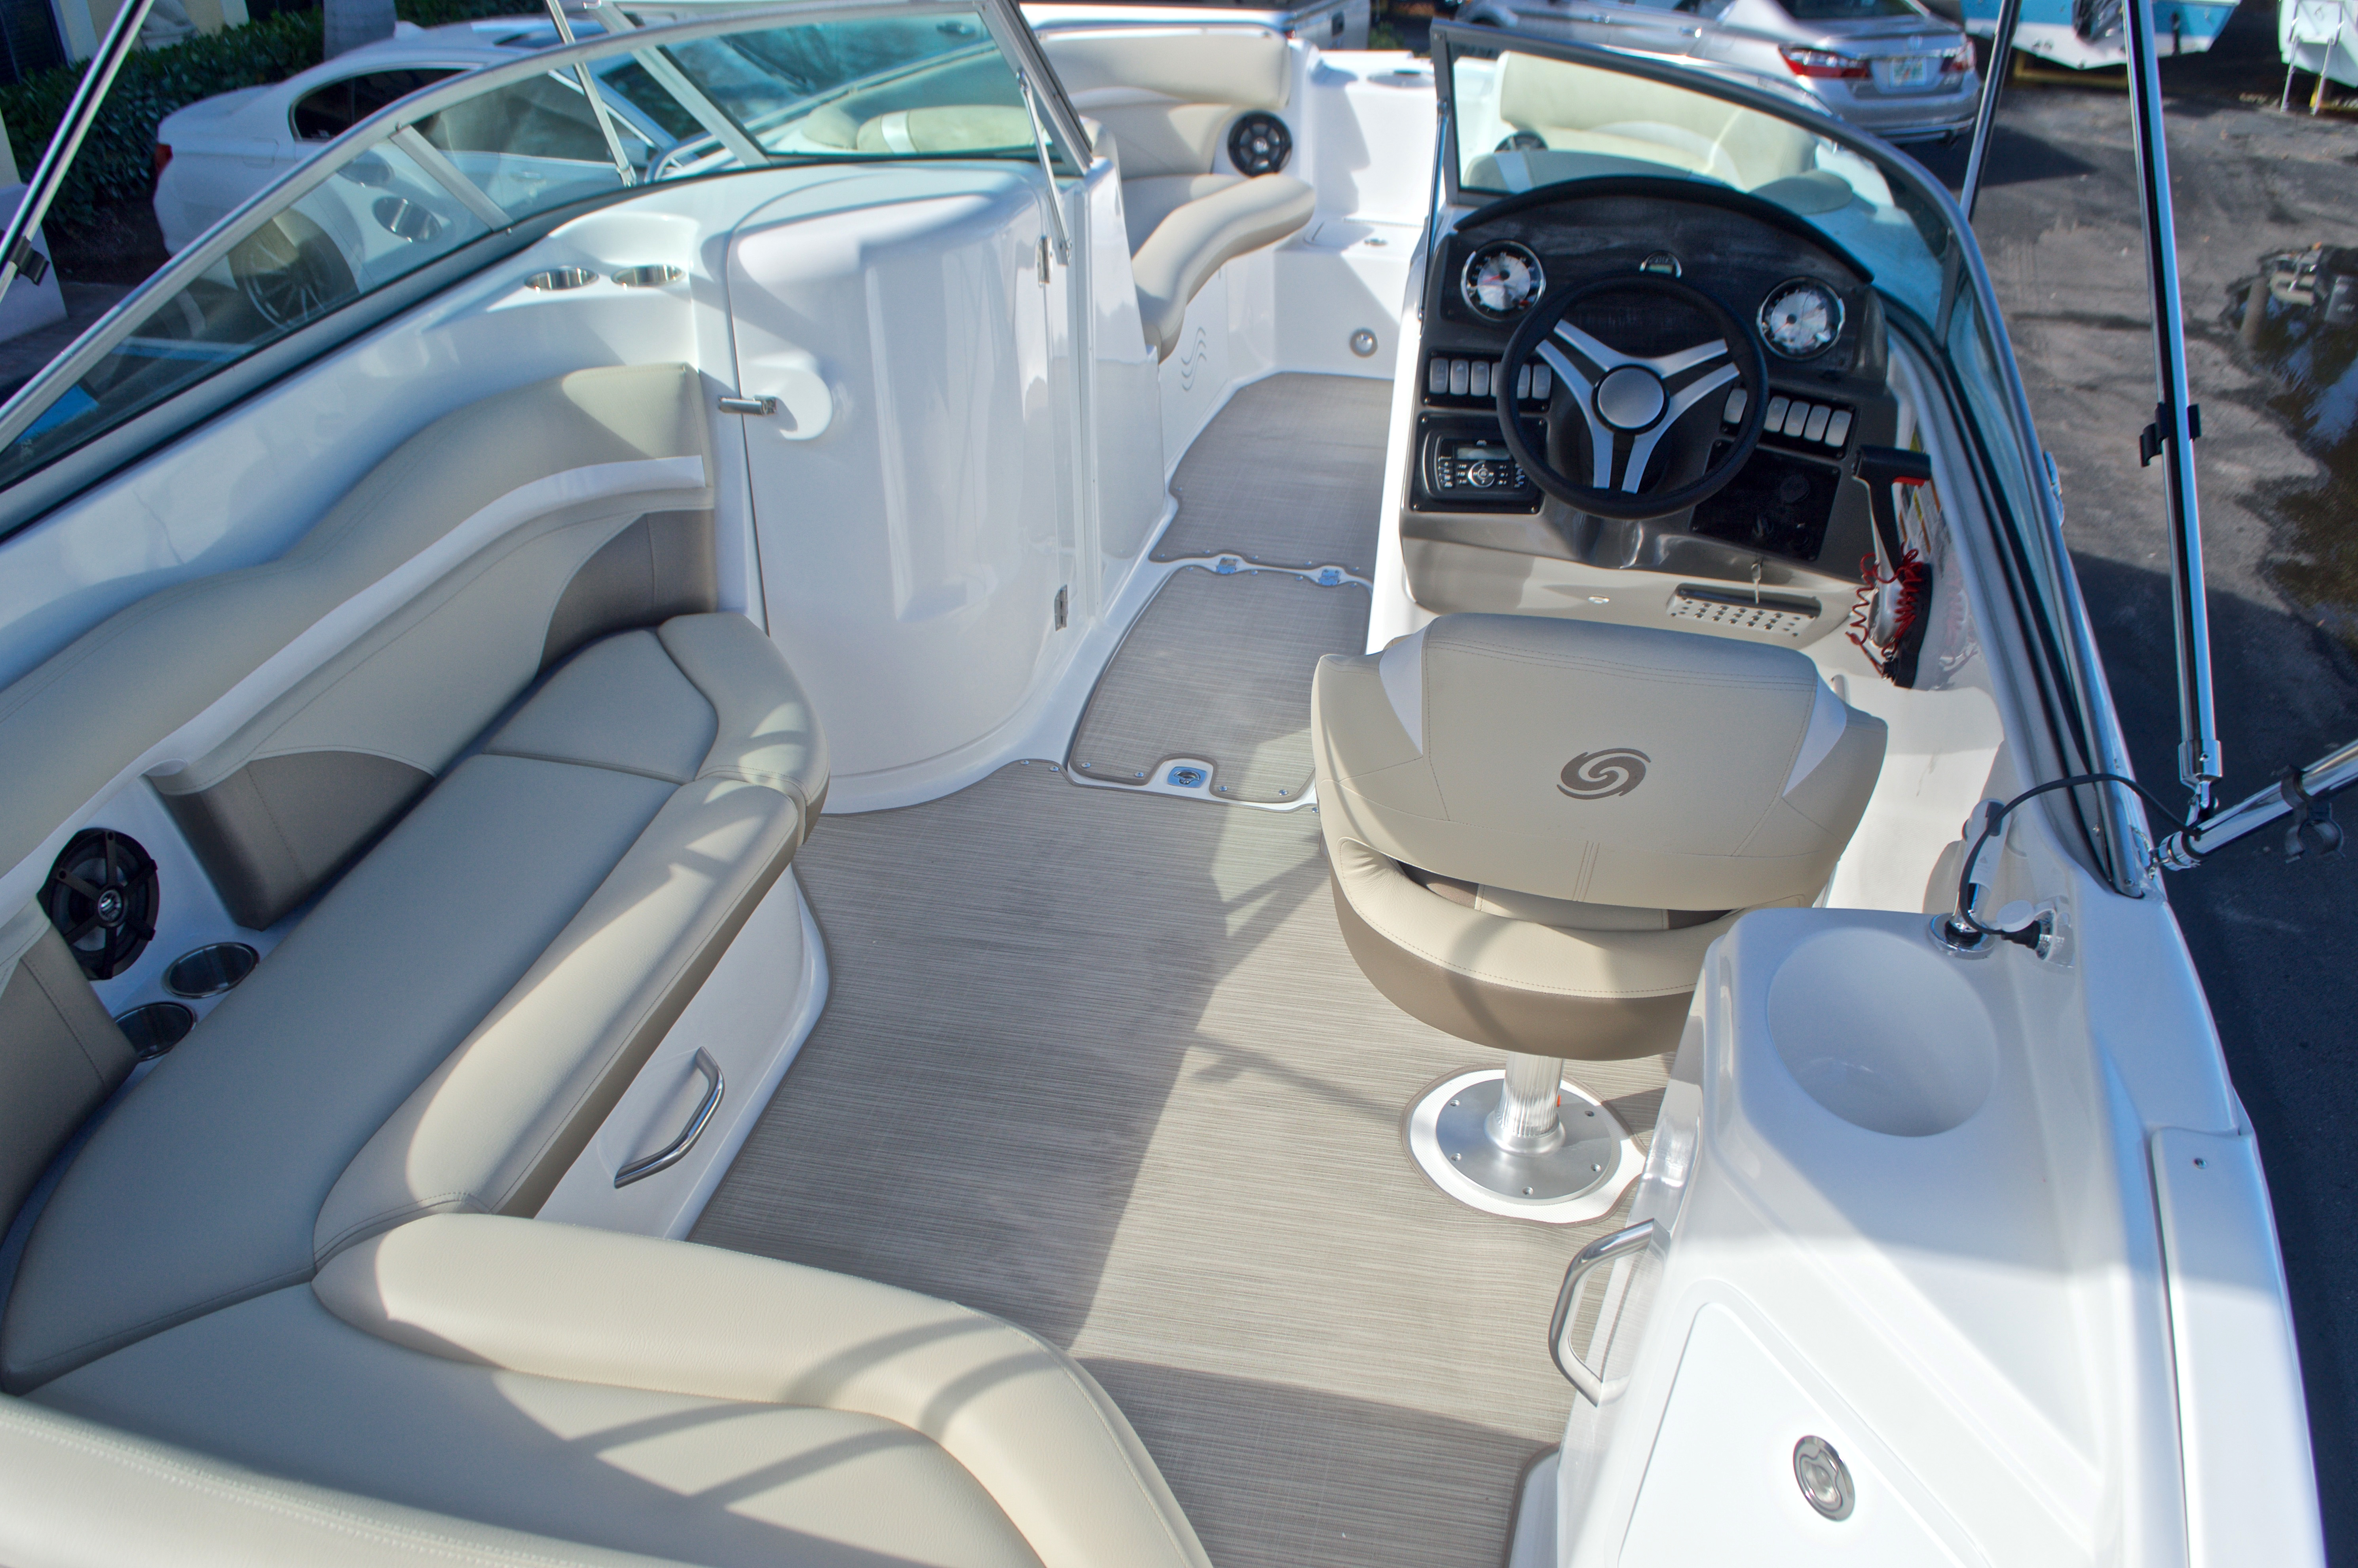 Thumbnail 12 for New 2017 Hurricane SunDeck SD 2200 OB boat for sale in West Palm Beach, FL